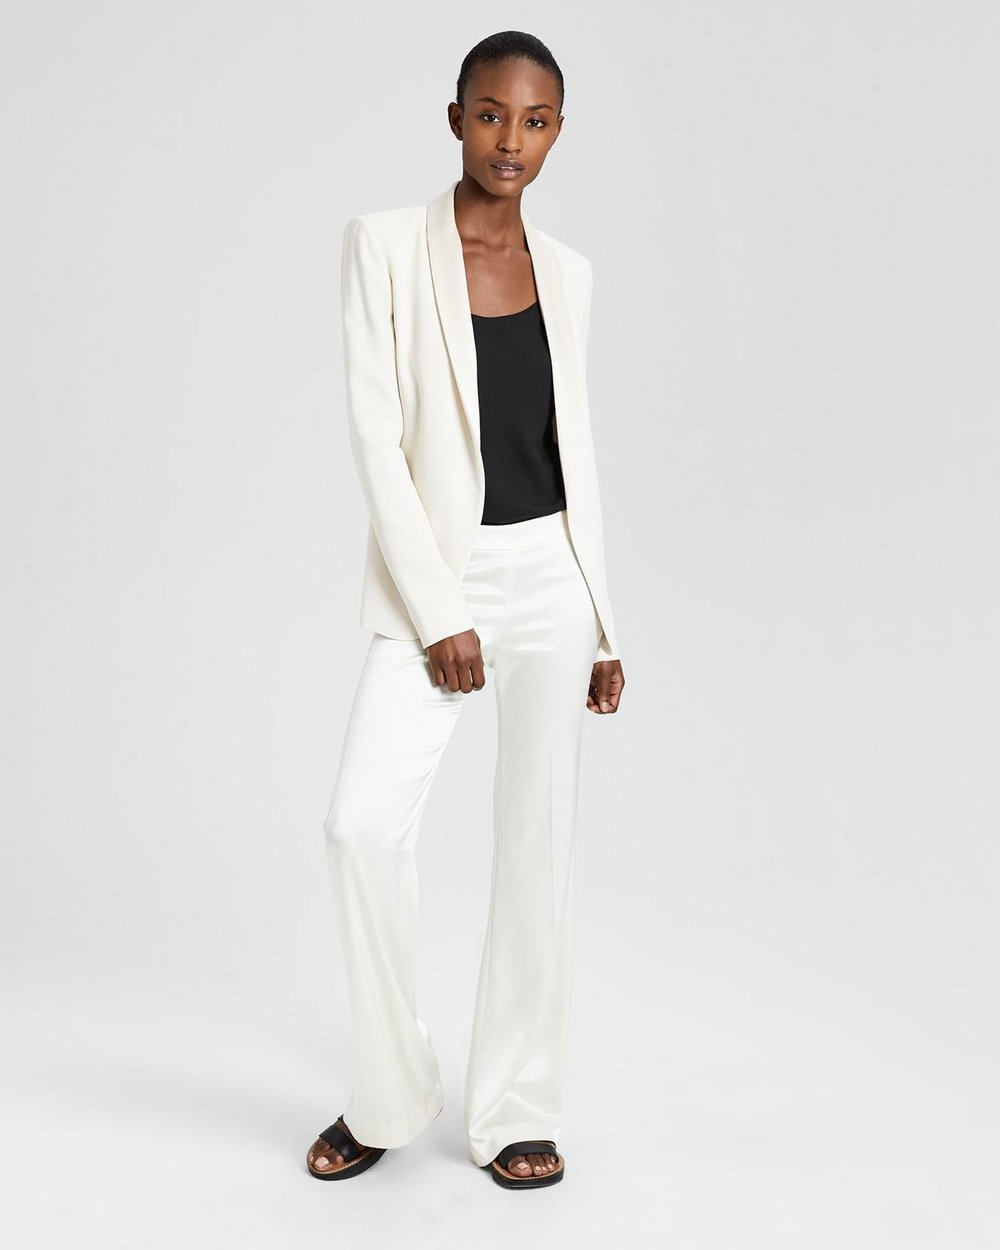 Theory Crepe Fluid Shawl Blazer. $435.Sateen Clean Flare Pant. $365. Theory.